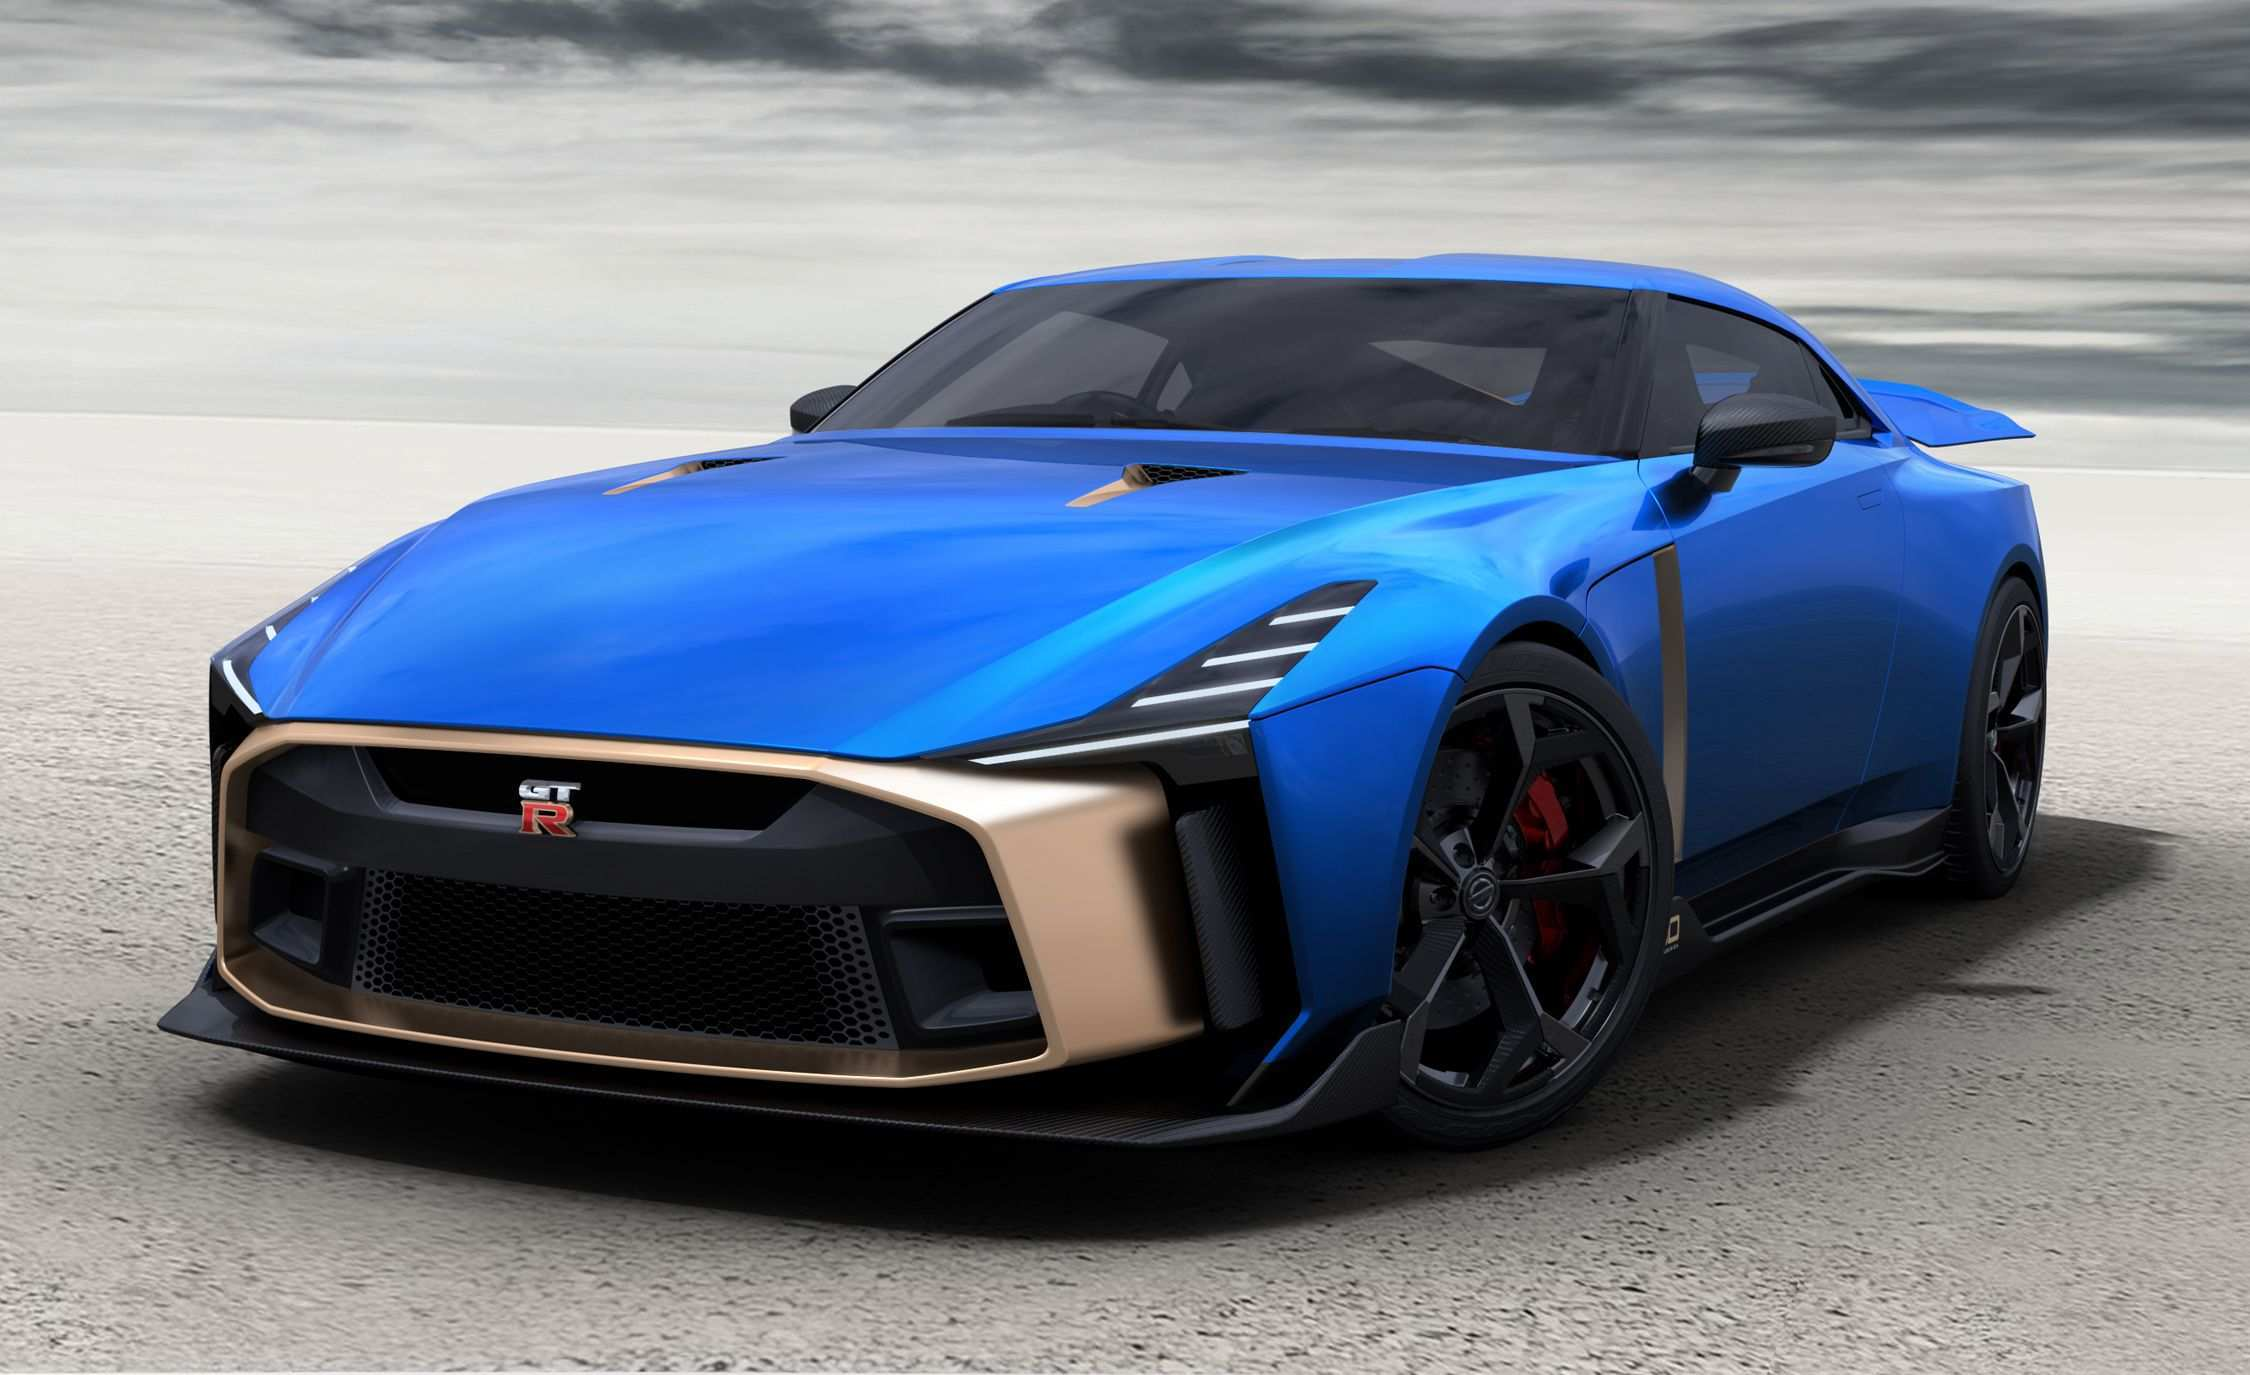 85 The Nissan 2020 Hp Rumors for Nissan 2020 Hp